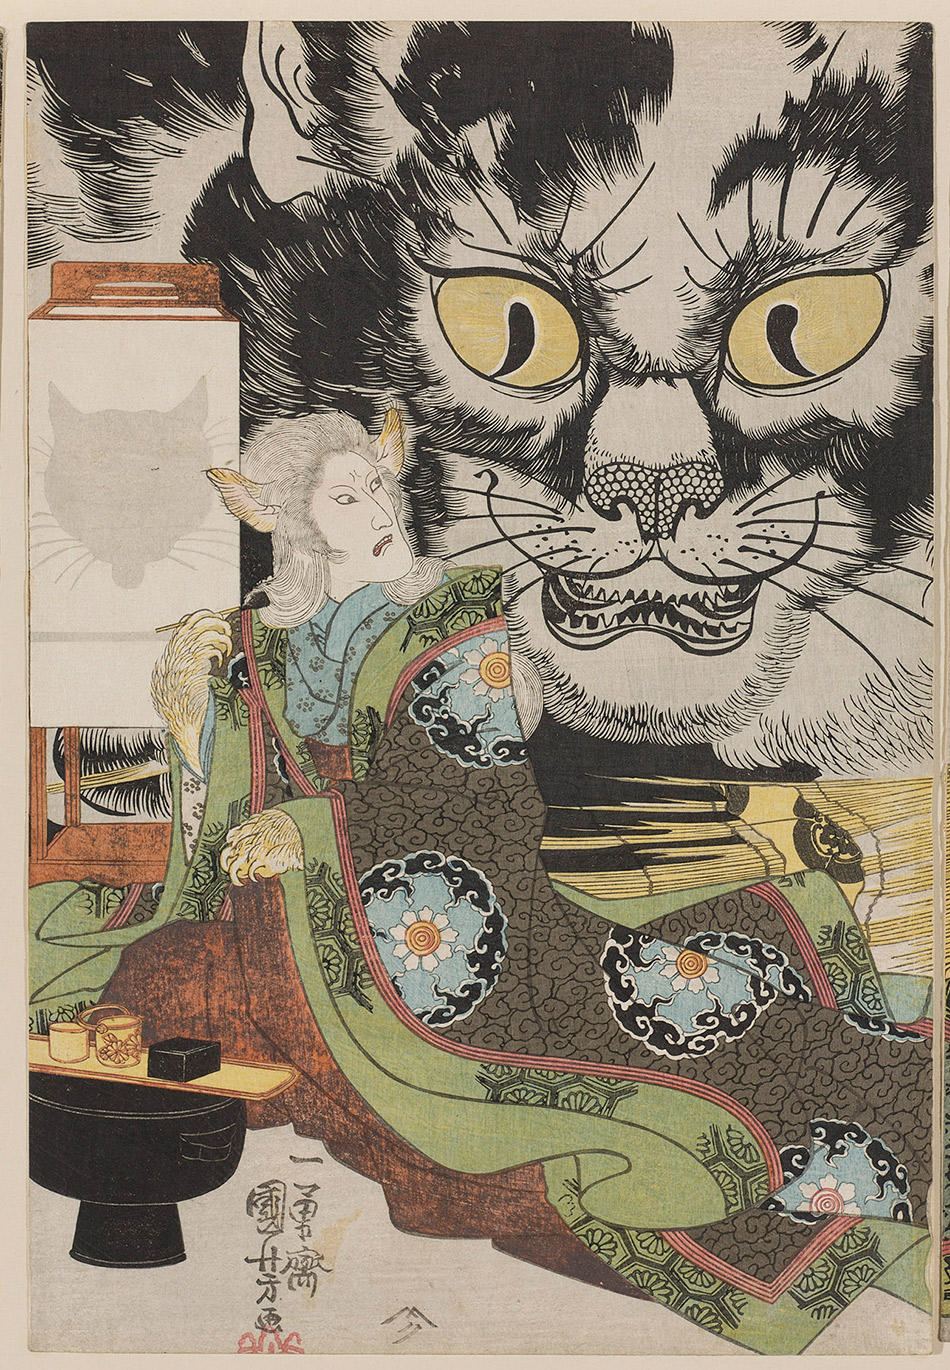 museum-of-fine-arts-boston_03-b_An-Imaginary-Scene-of-the-Origin-of-the-Cat-Stone-at-Okabe_Utagawa-Kuniyoshi_w